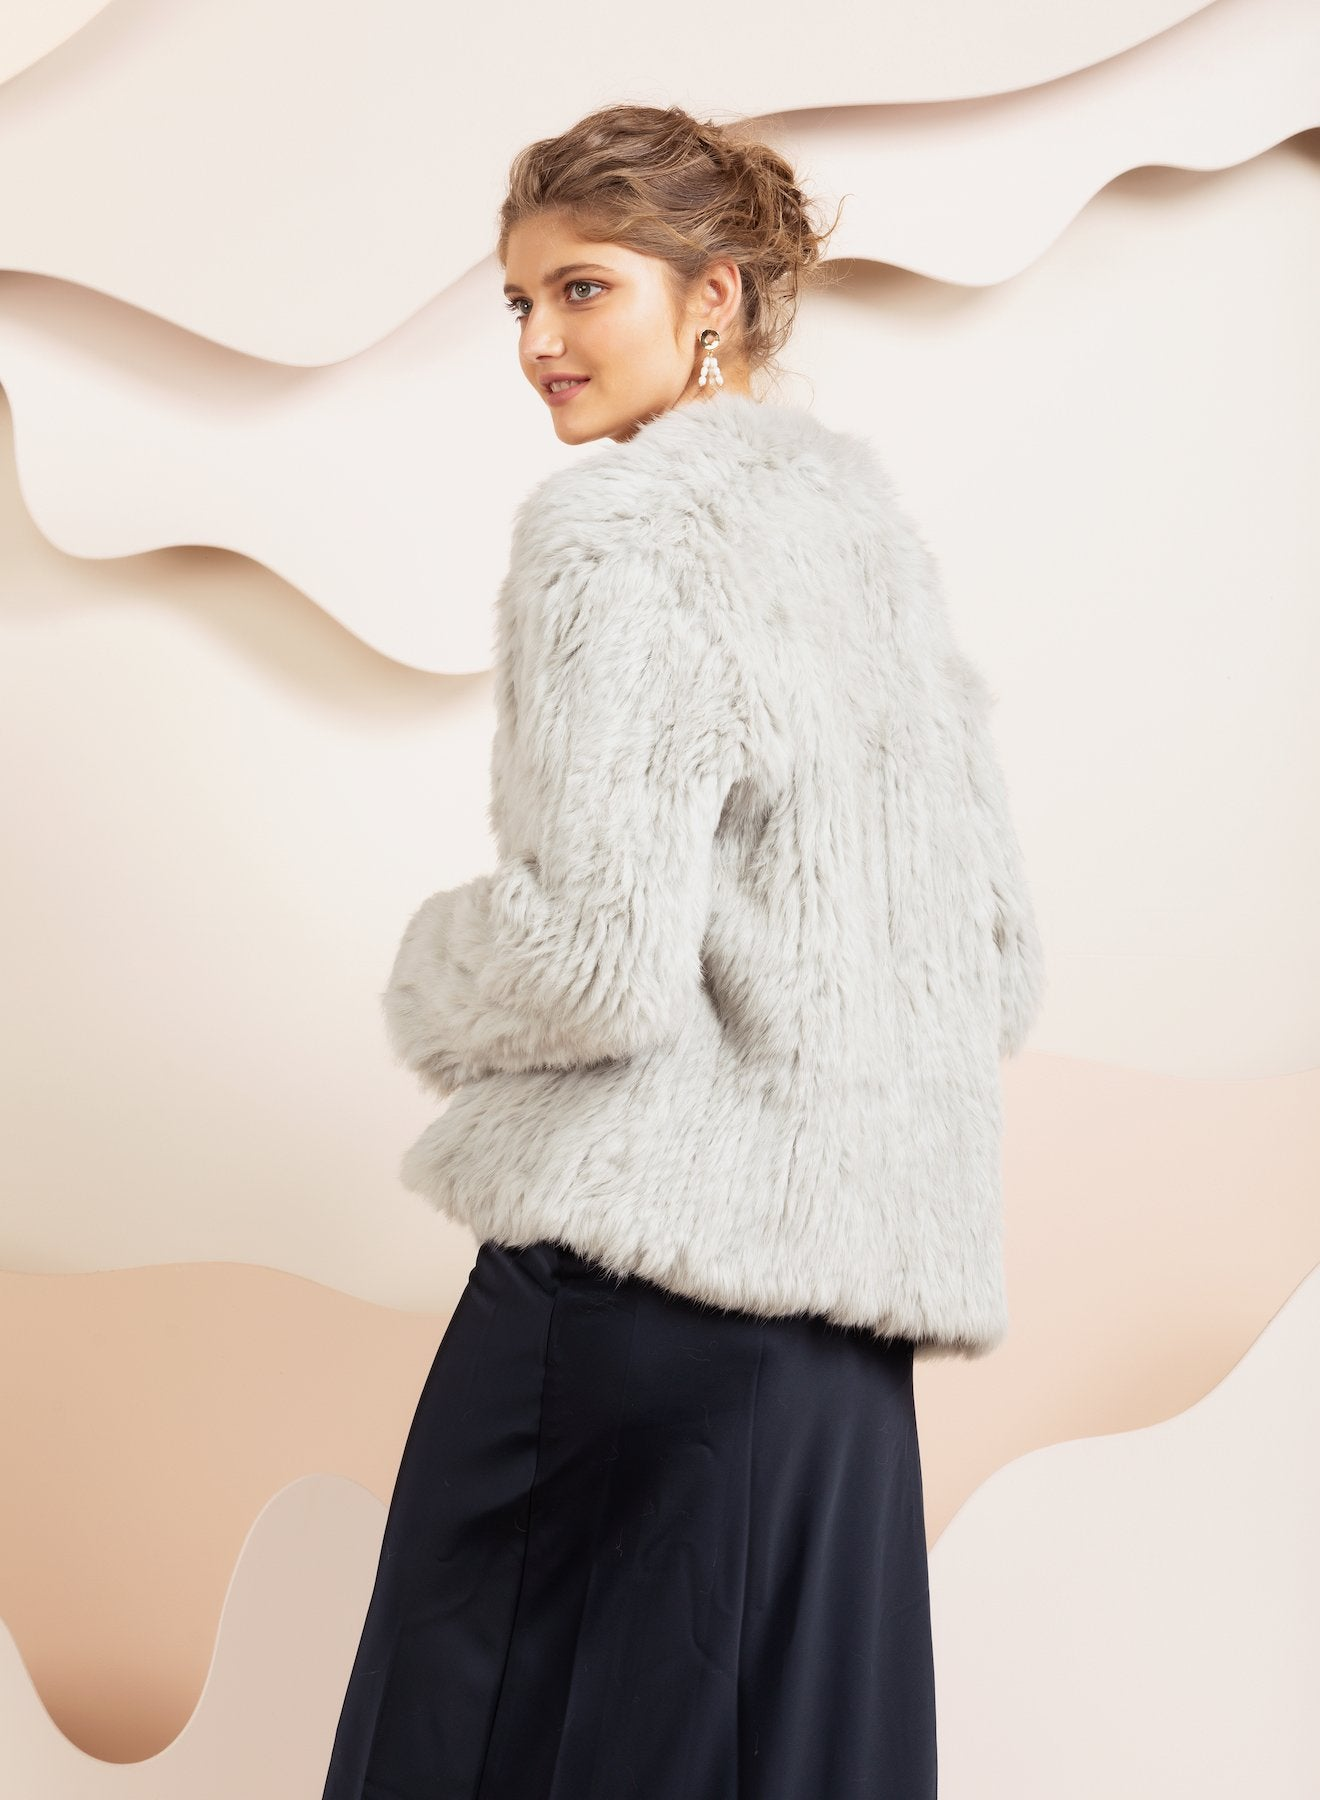 Valencia Light Grey Fur Jacket